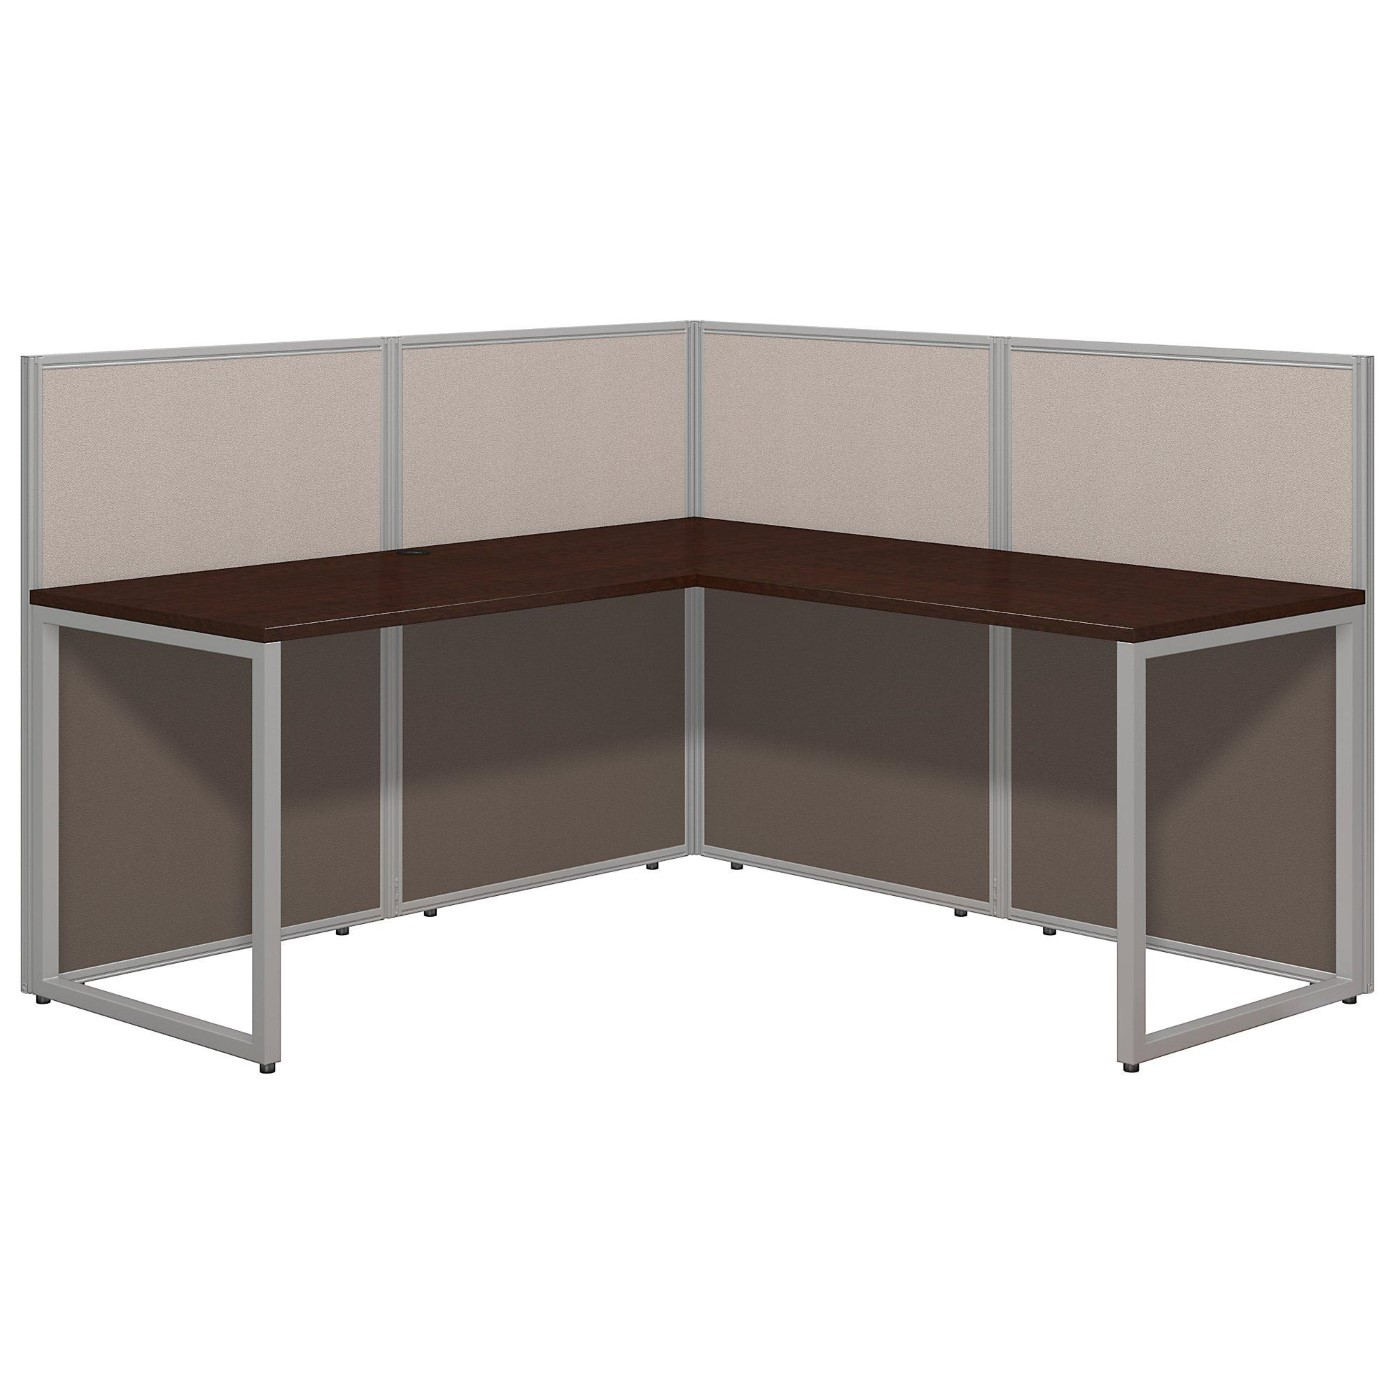 <font color=#c60><b>BUSH BUSINESS FURNITURE EASY OFFICE 60W L SHAPED DESK OPEN OFFICE. FREE SHIPPING</font></b>